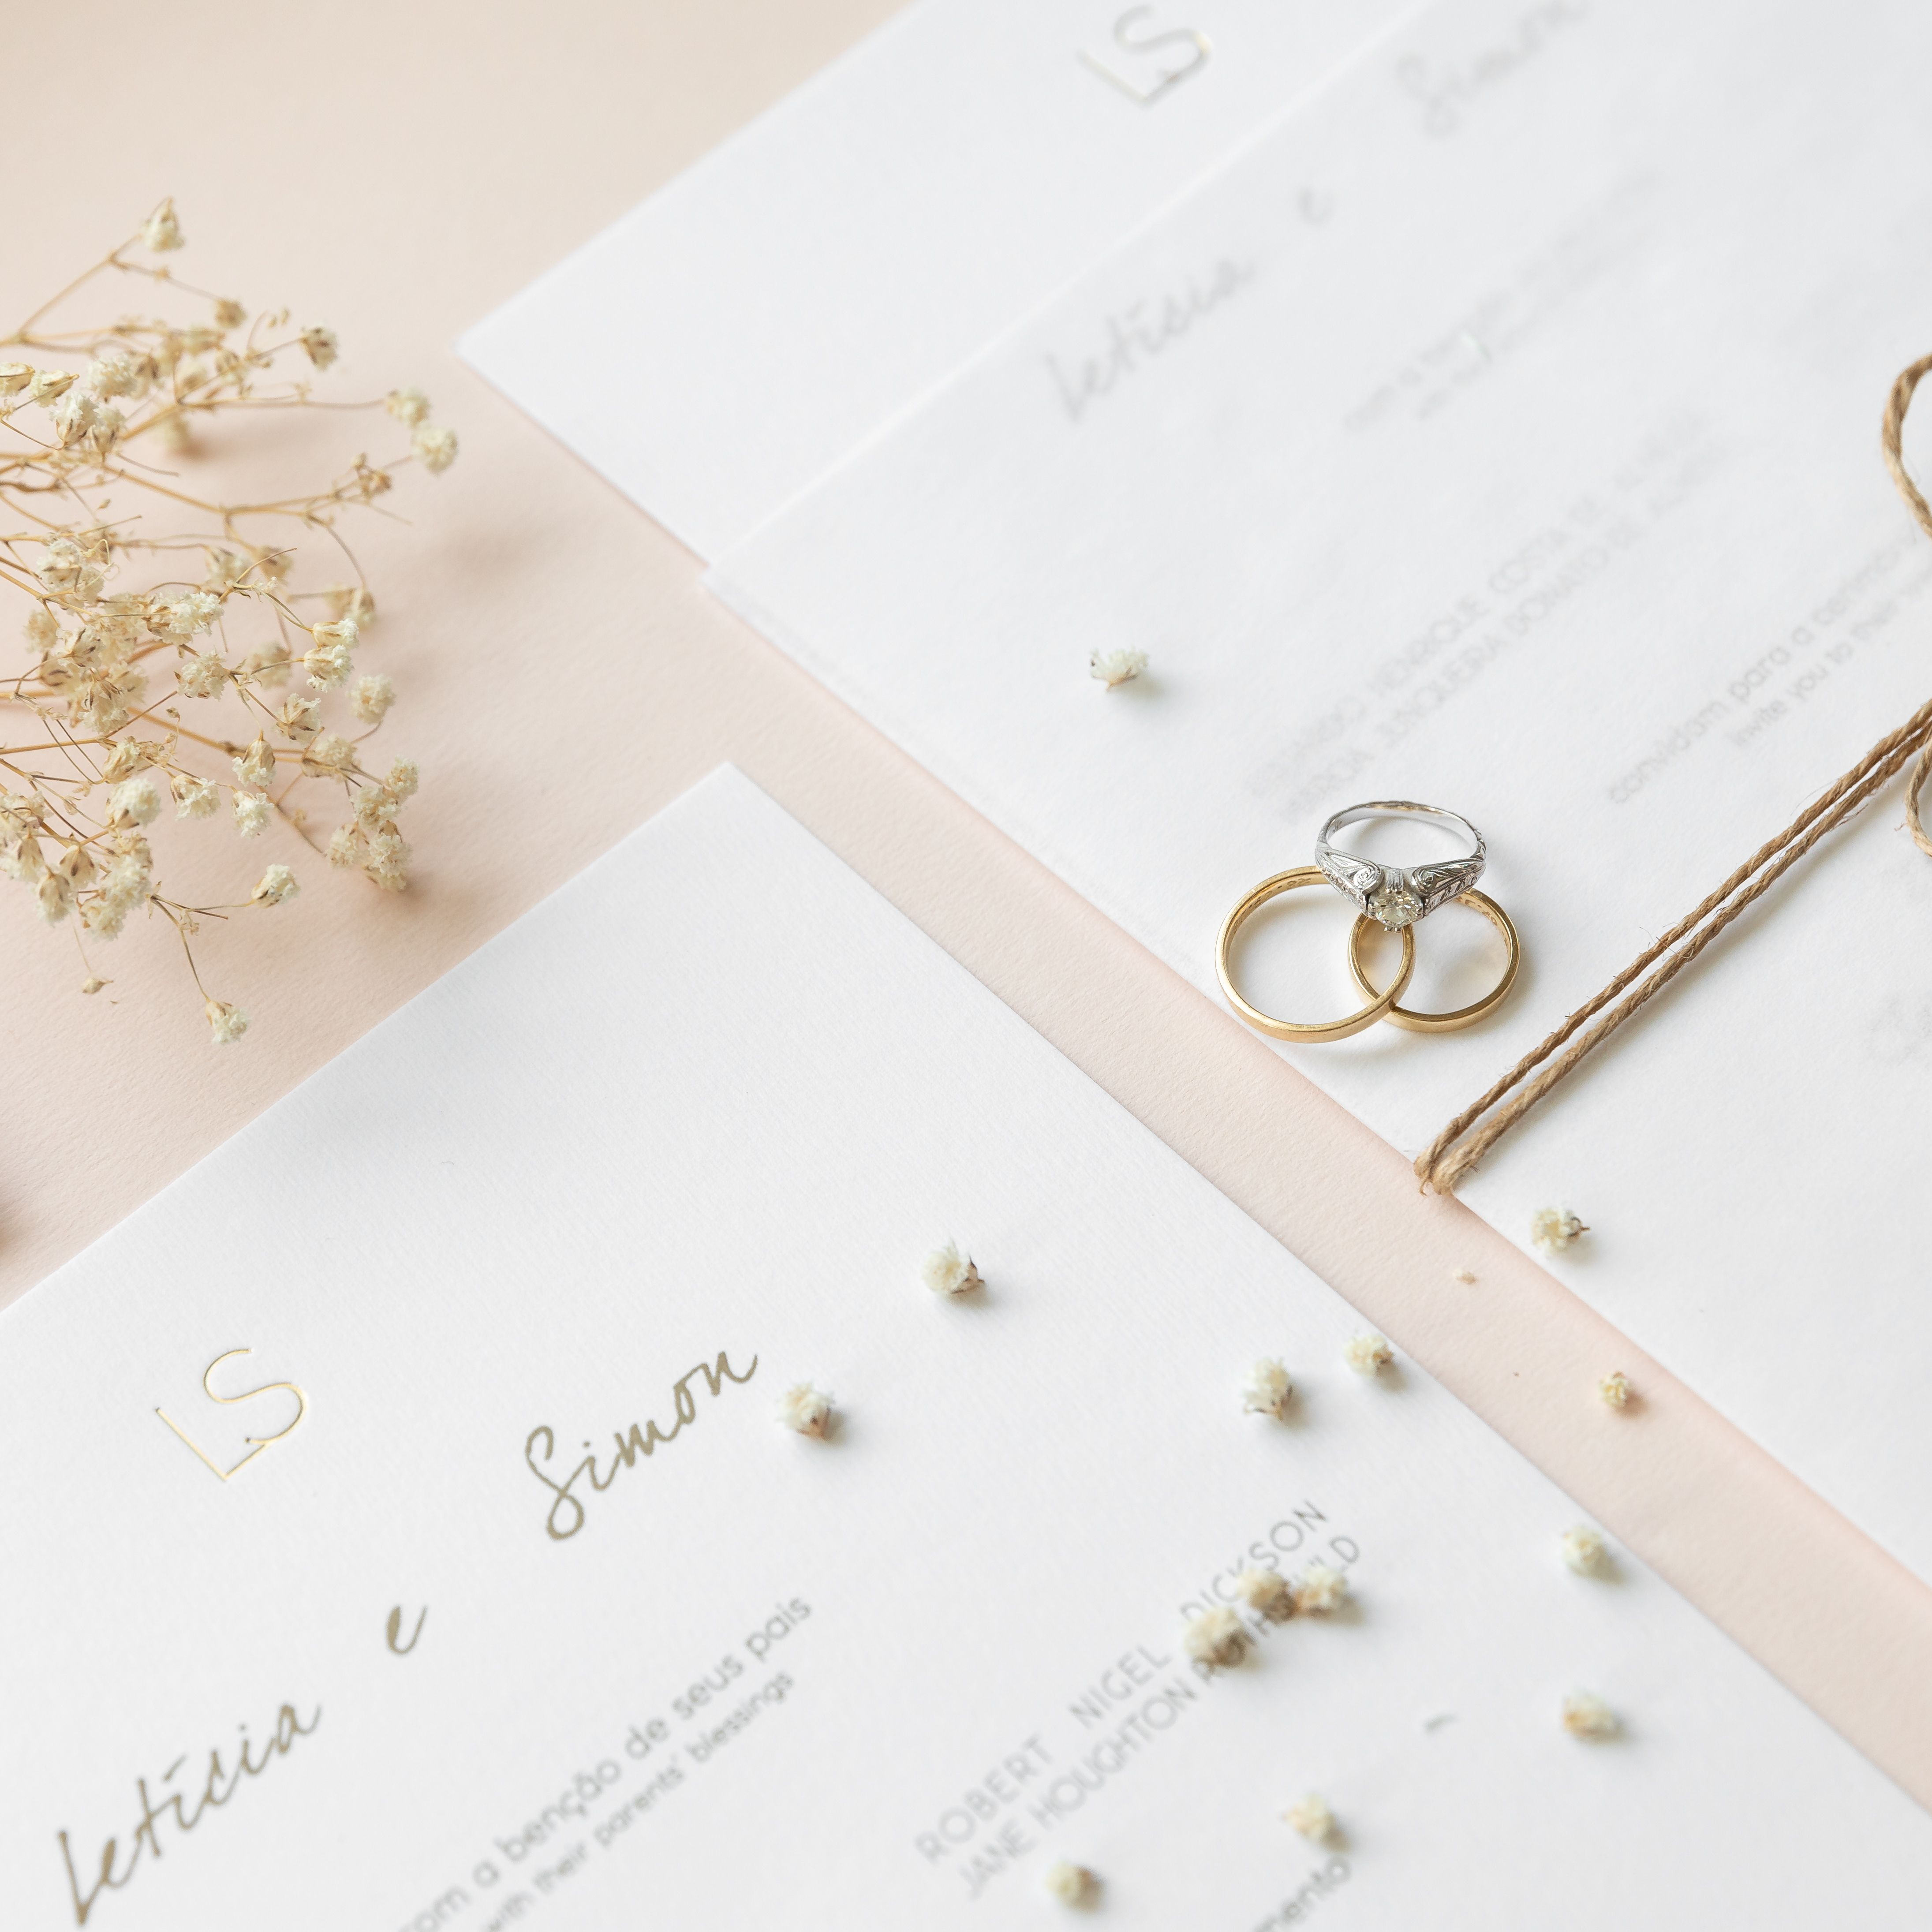 12 Beautiful Free Wedding Fonts Perfect For Invites